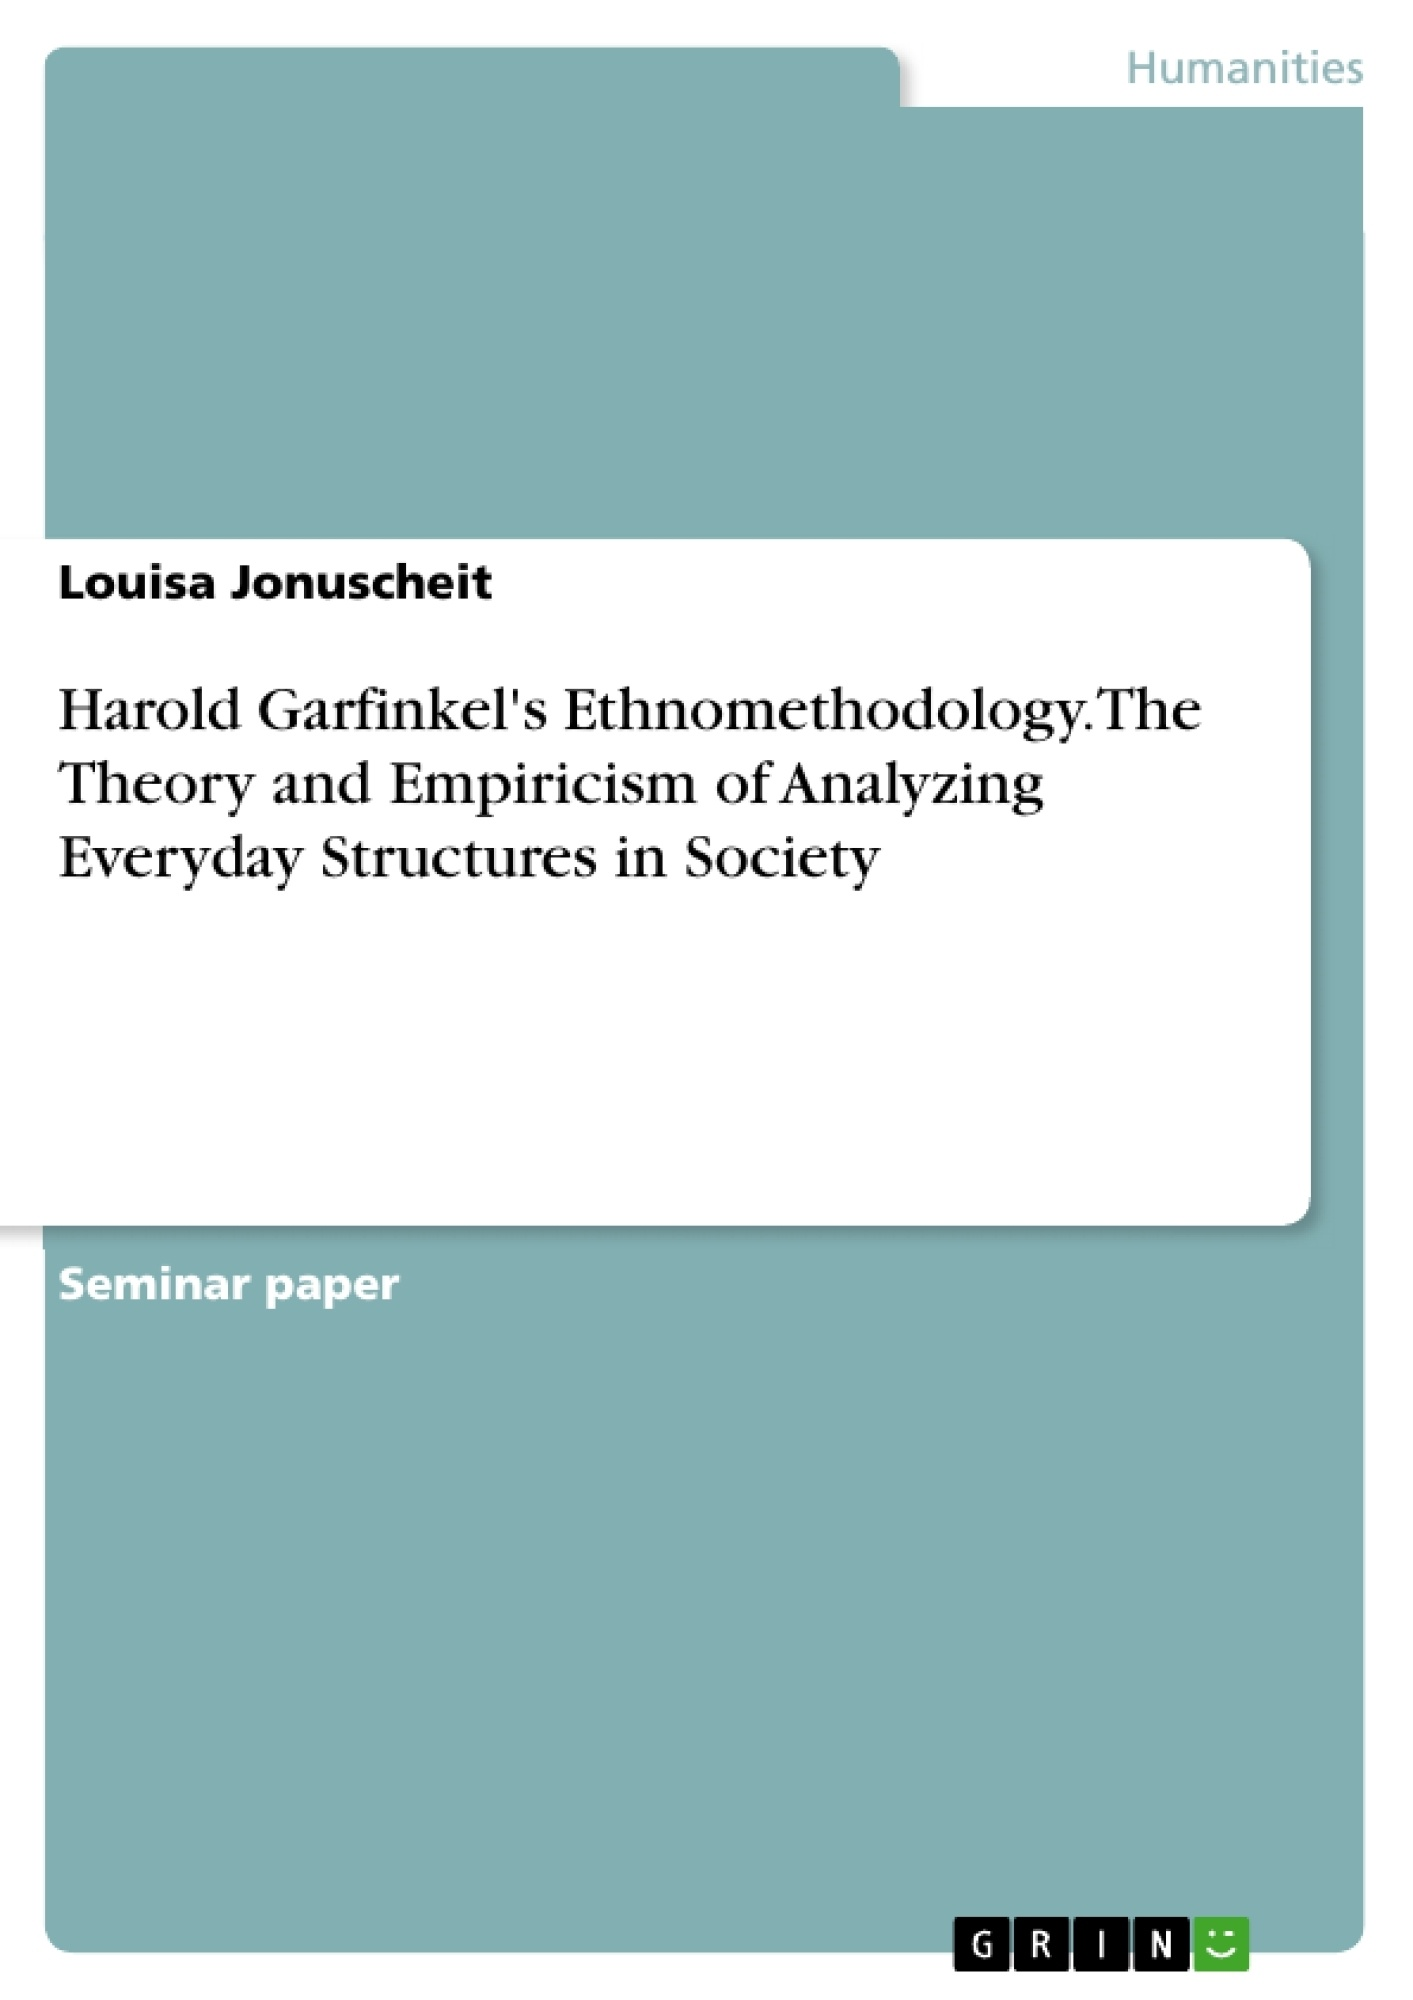 functionalisms essay The free sociology research paper (conflict theory and functionalism essay) presented on this page should not be viewed as a sample of our on-line writing service.